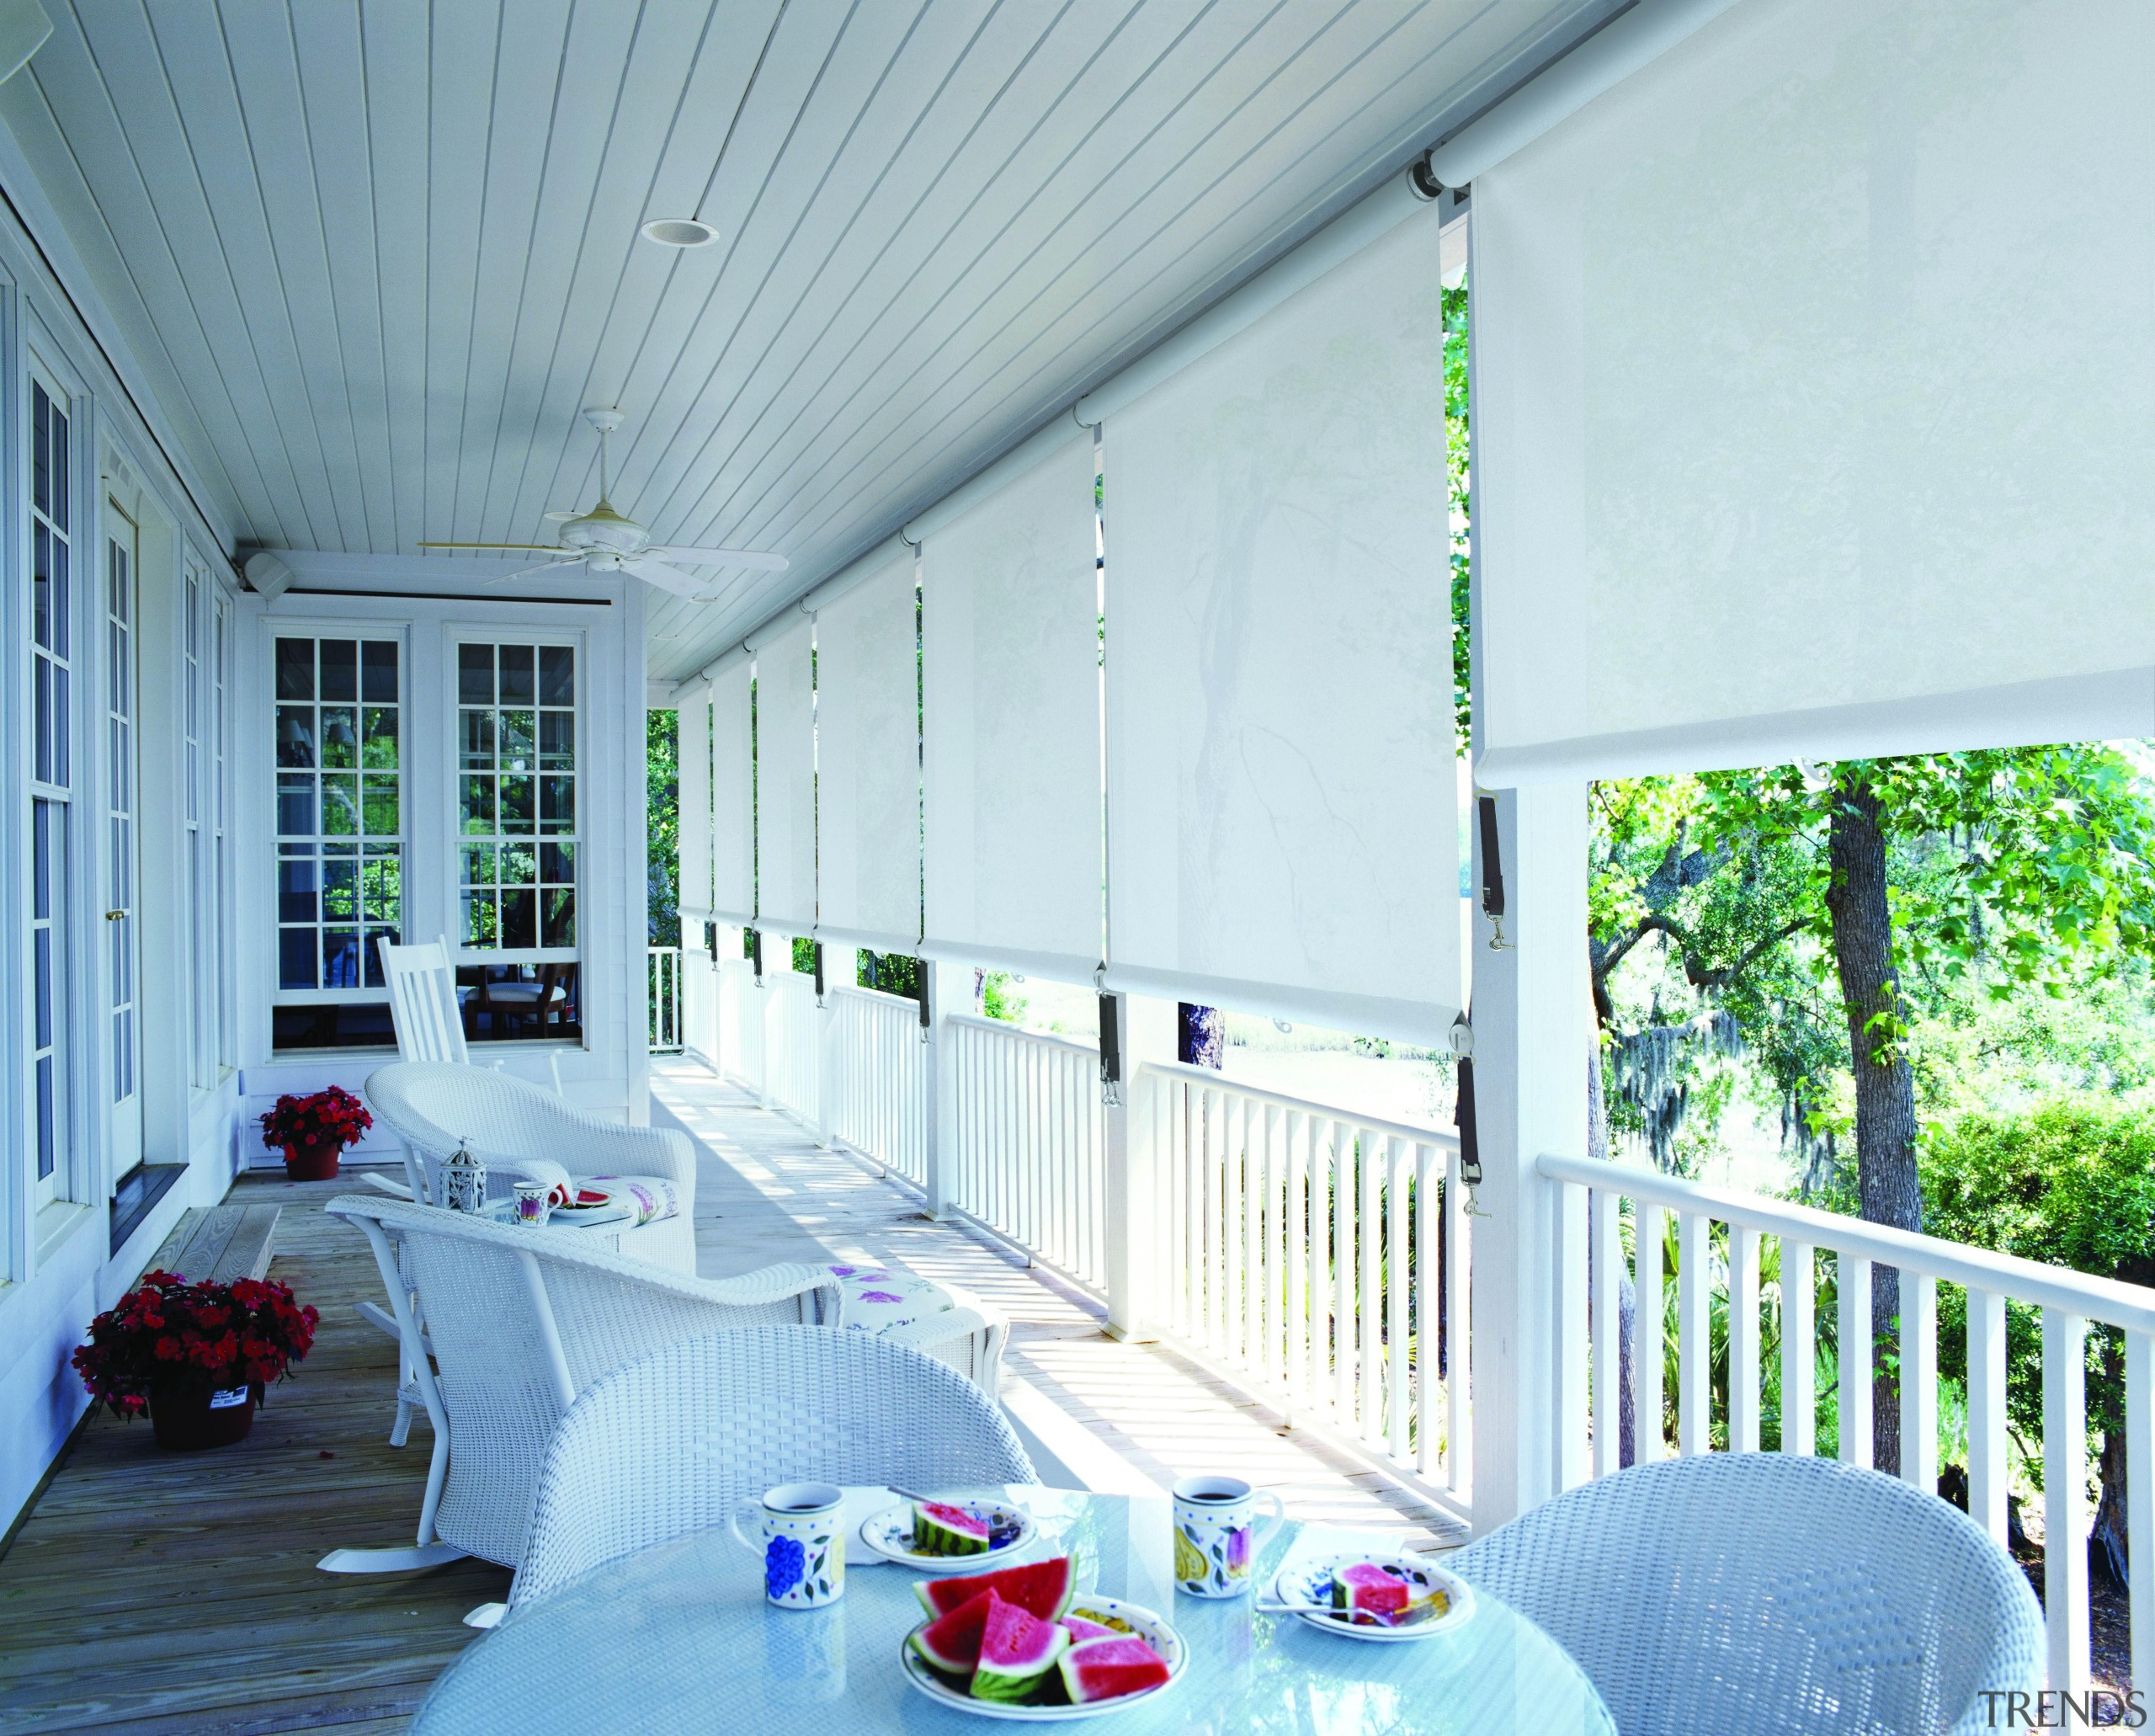 fabric awning - fabric awning - architecture   architecture, balcony, ceiling, daylighting, estate, home, house, interior design, living room, porch, real estate, roof, shade, wall, window, white, teal